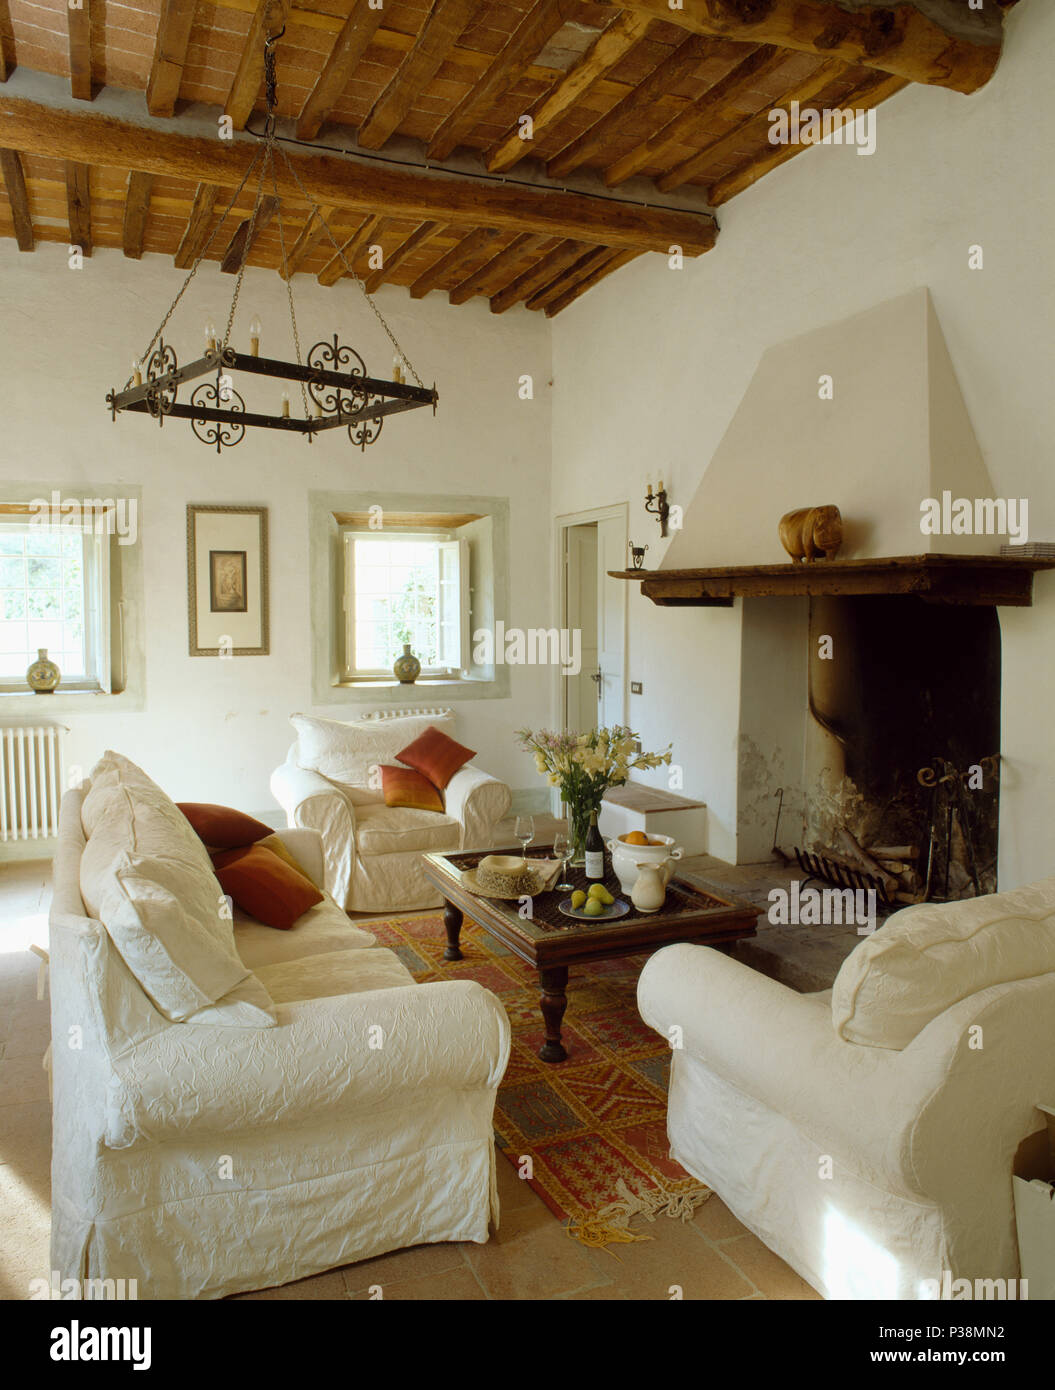 White Loose Covers On Sofa And Armchairs In Rustic Tuscan Living Room With Beamed Ceiling Low Table Front Of Fireplace